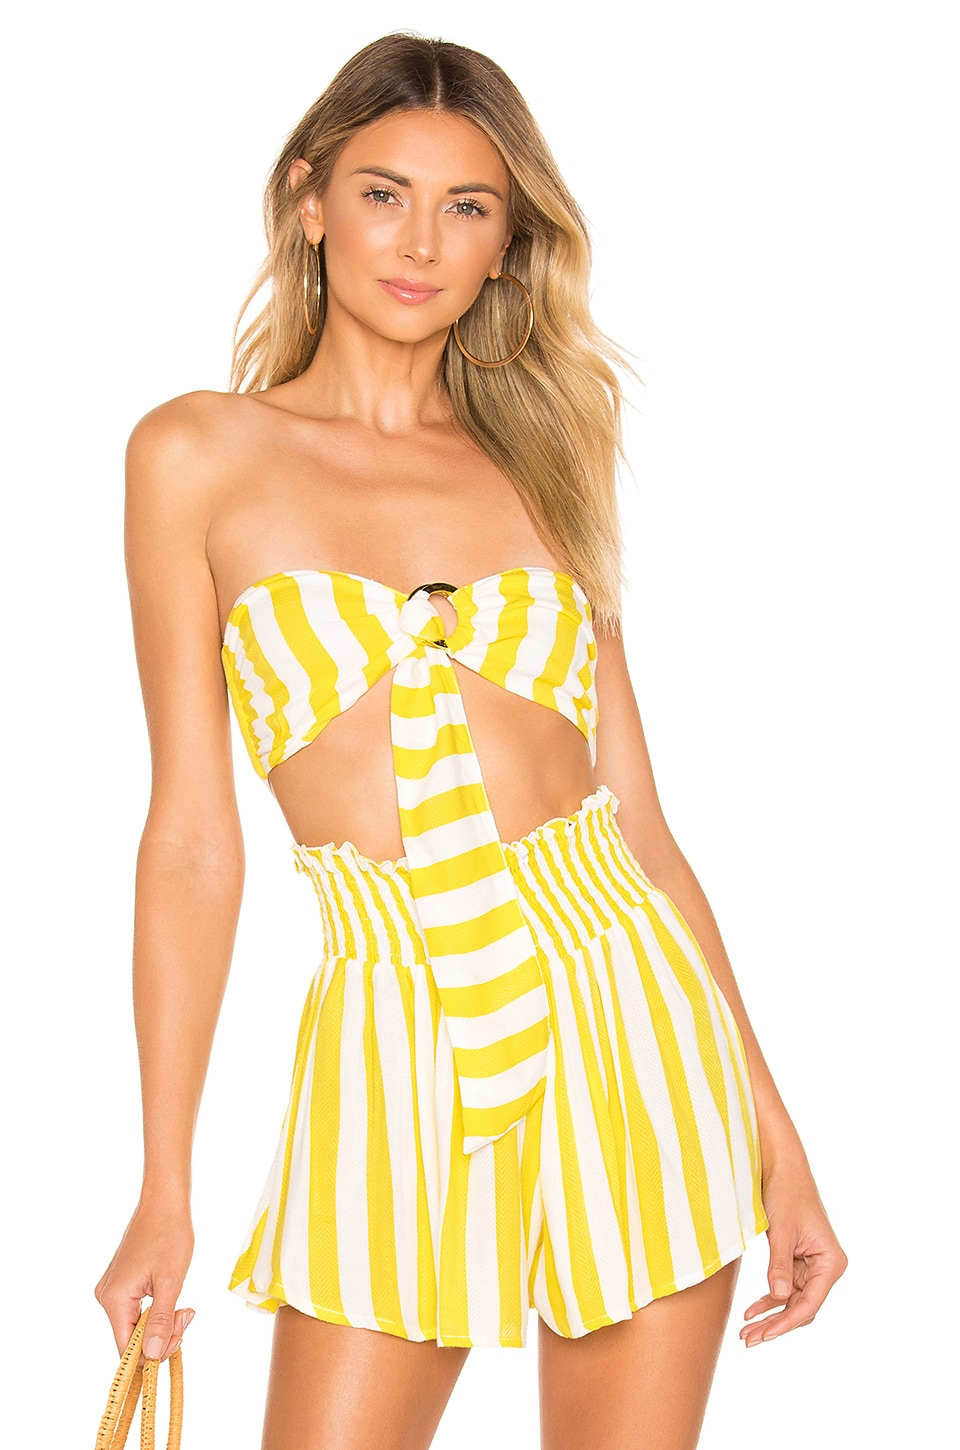 lovewave Milly Top in Chartreuse Stripe